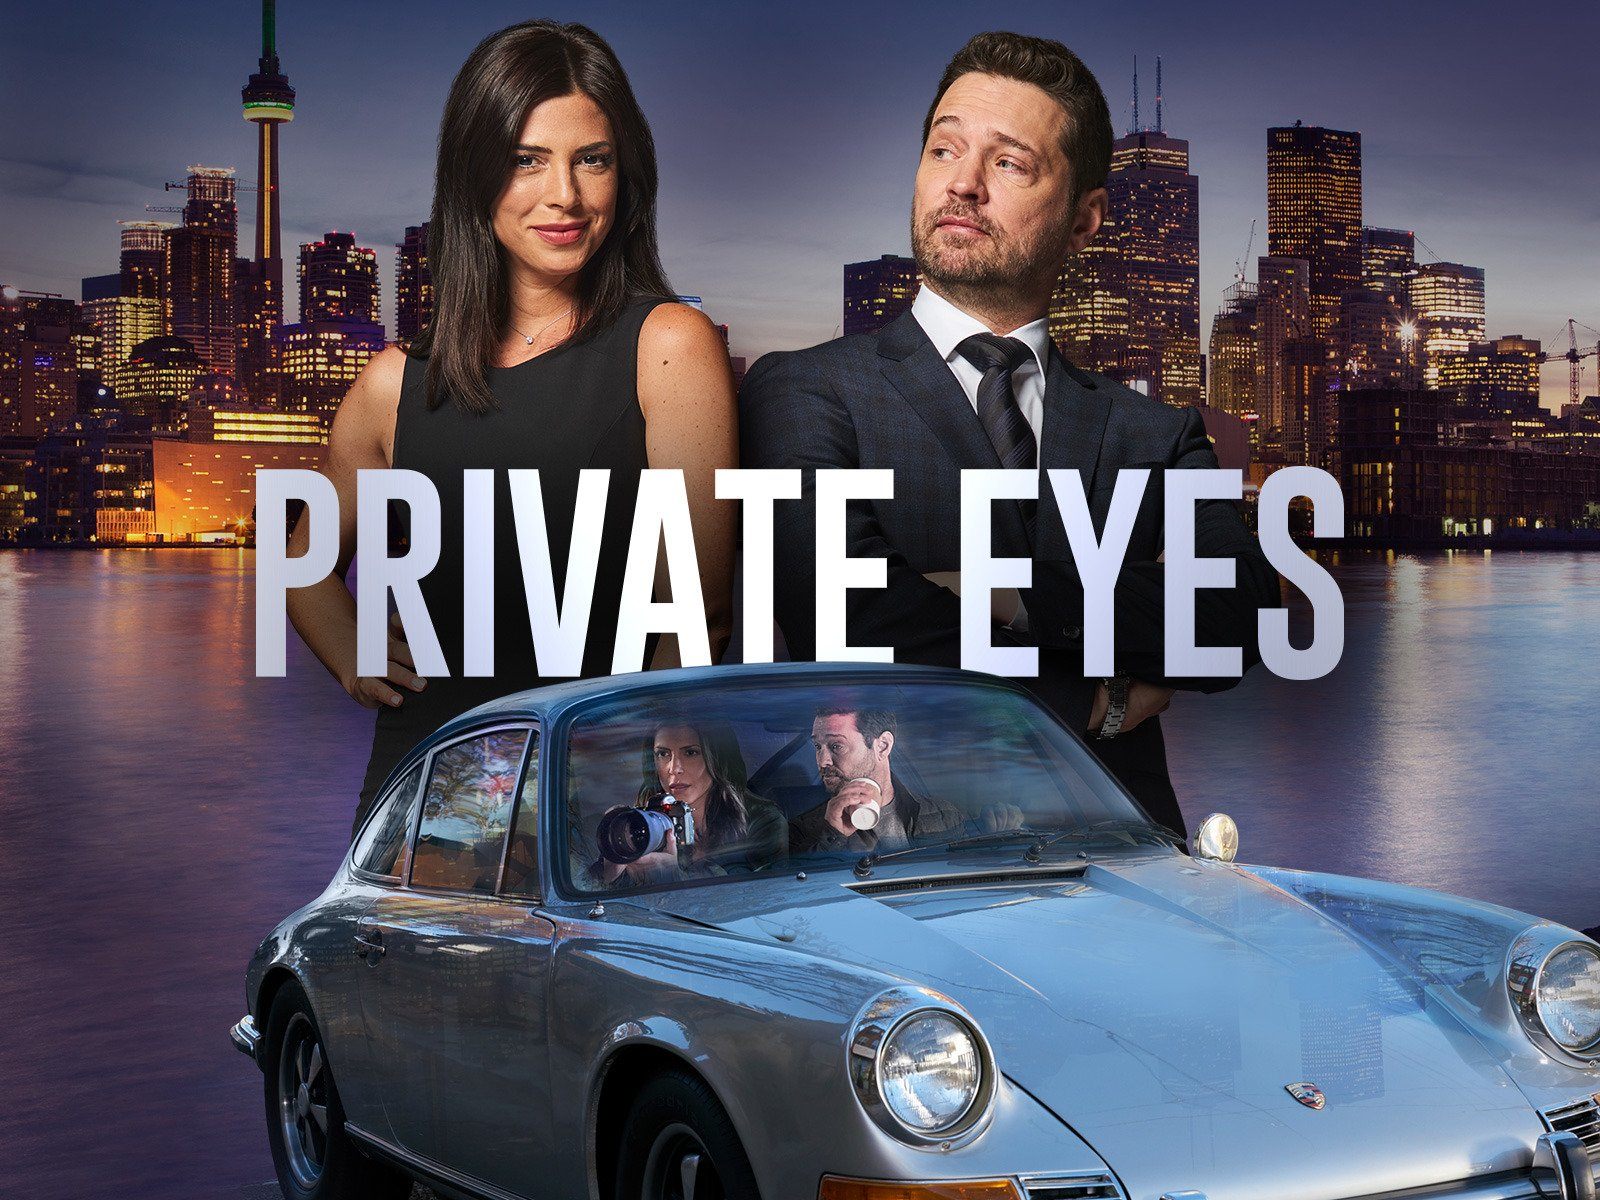 Private Eyes Season 4 Episode 5 Subtitle (English Srt) Download